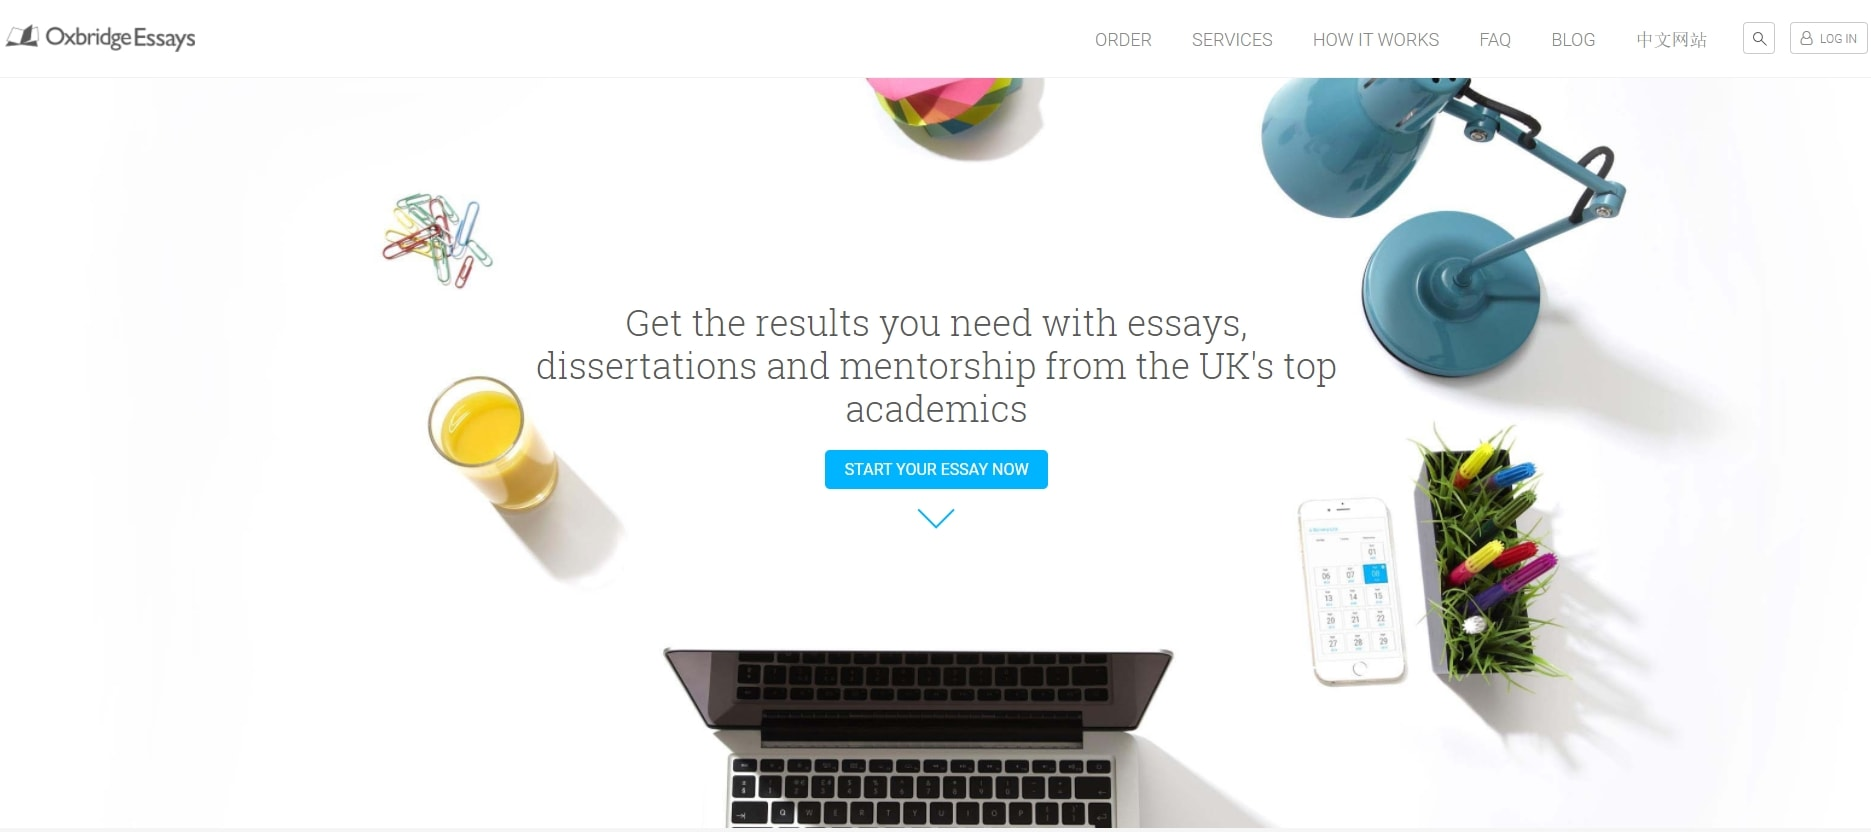 OxbridgeEssays.com Review